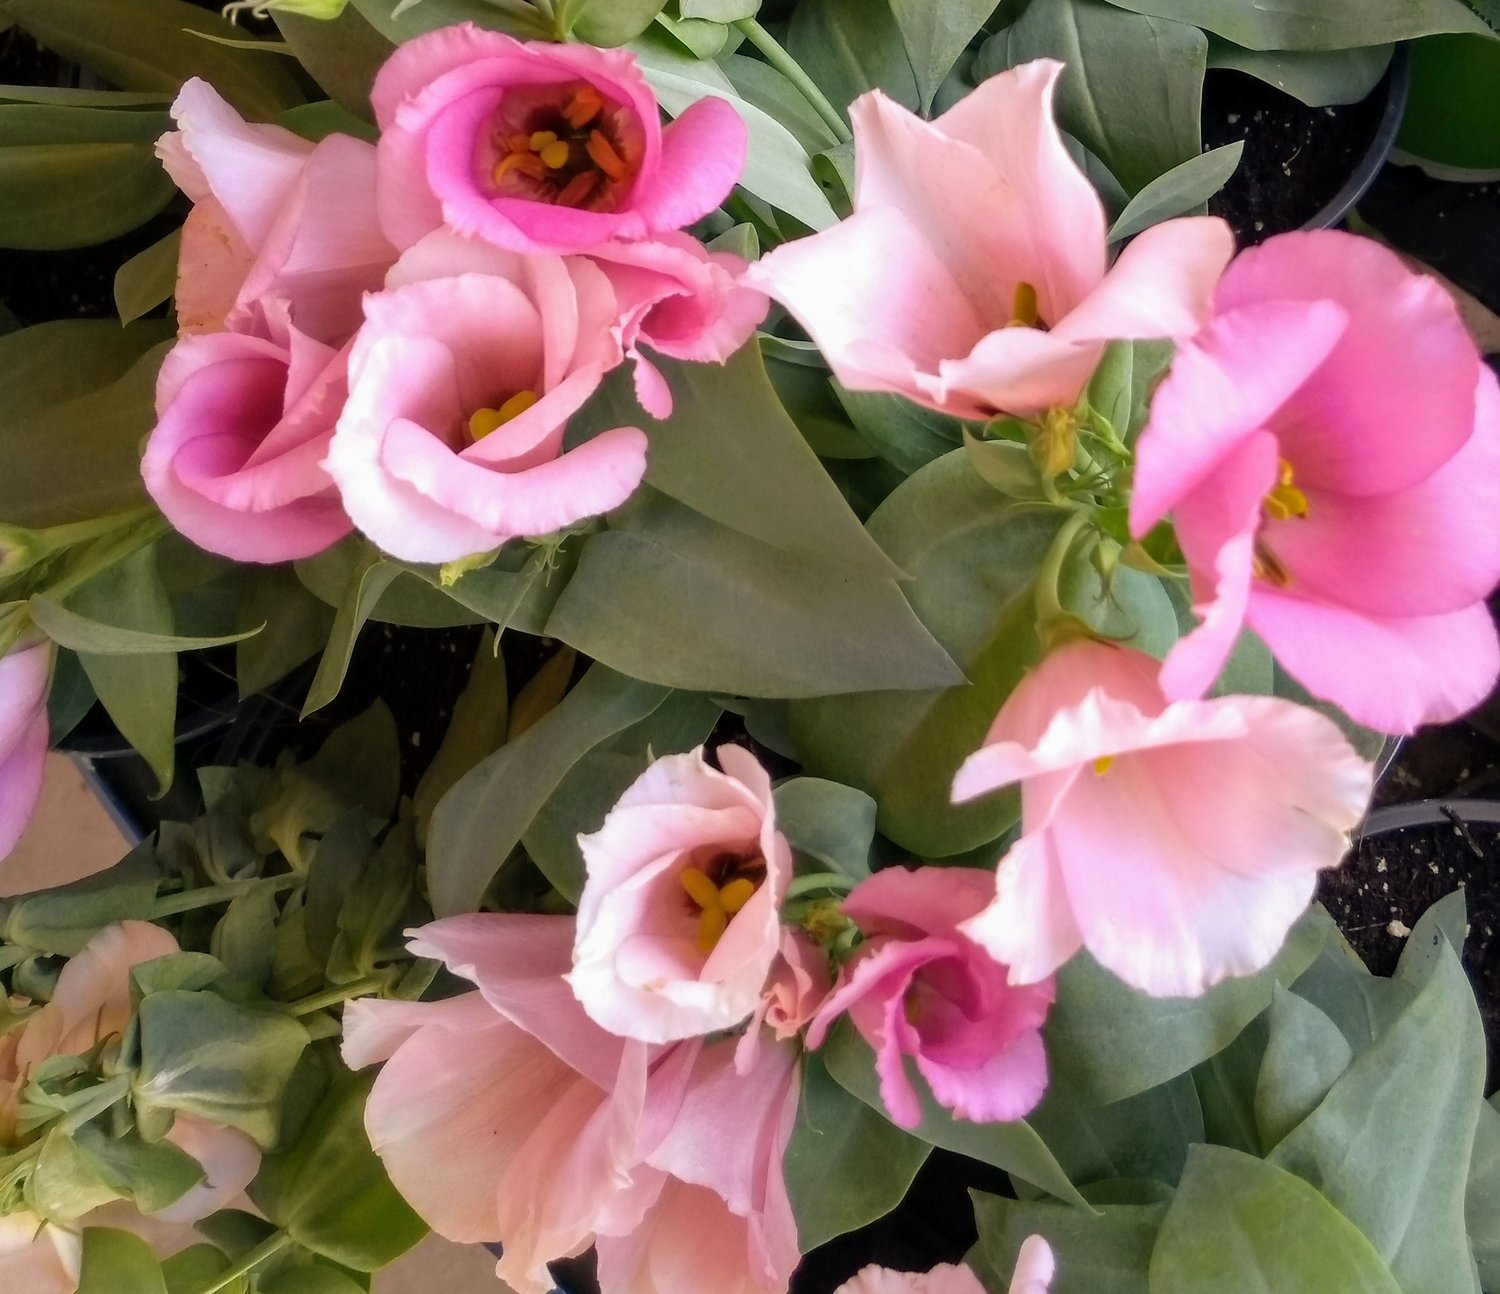 Perennials Annuals A Nursery With A Passion For Plants